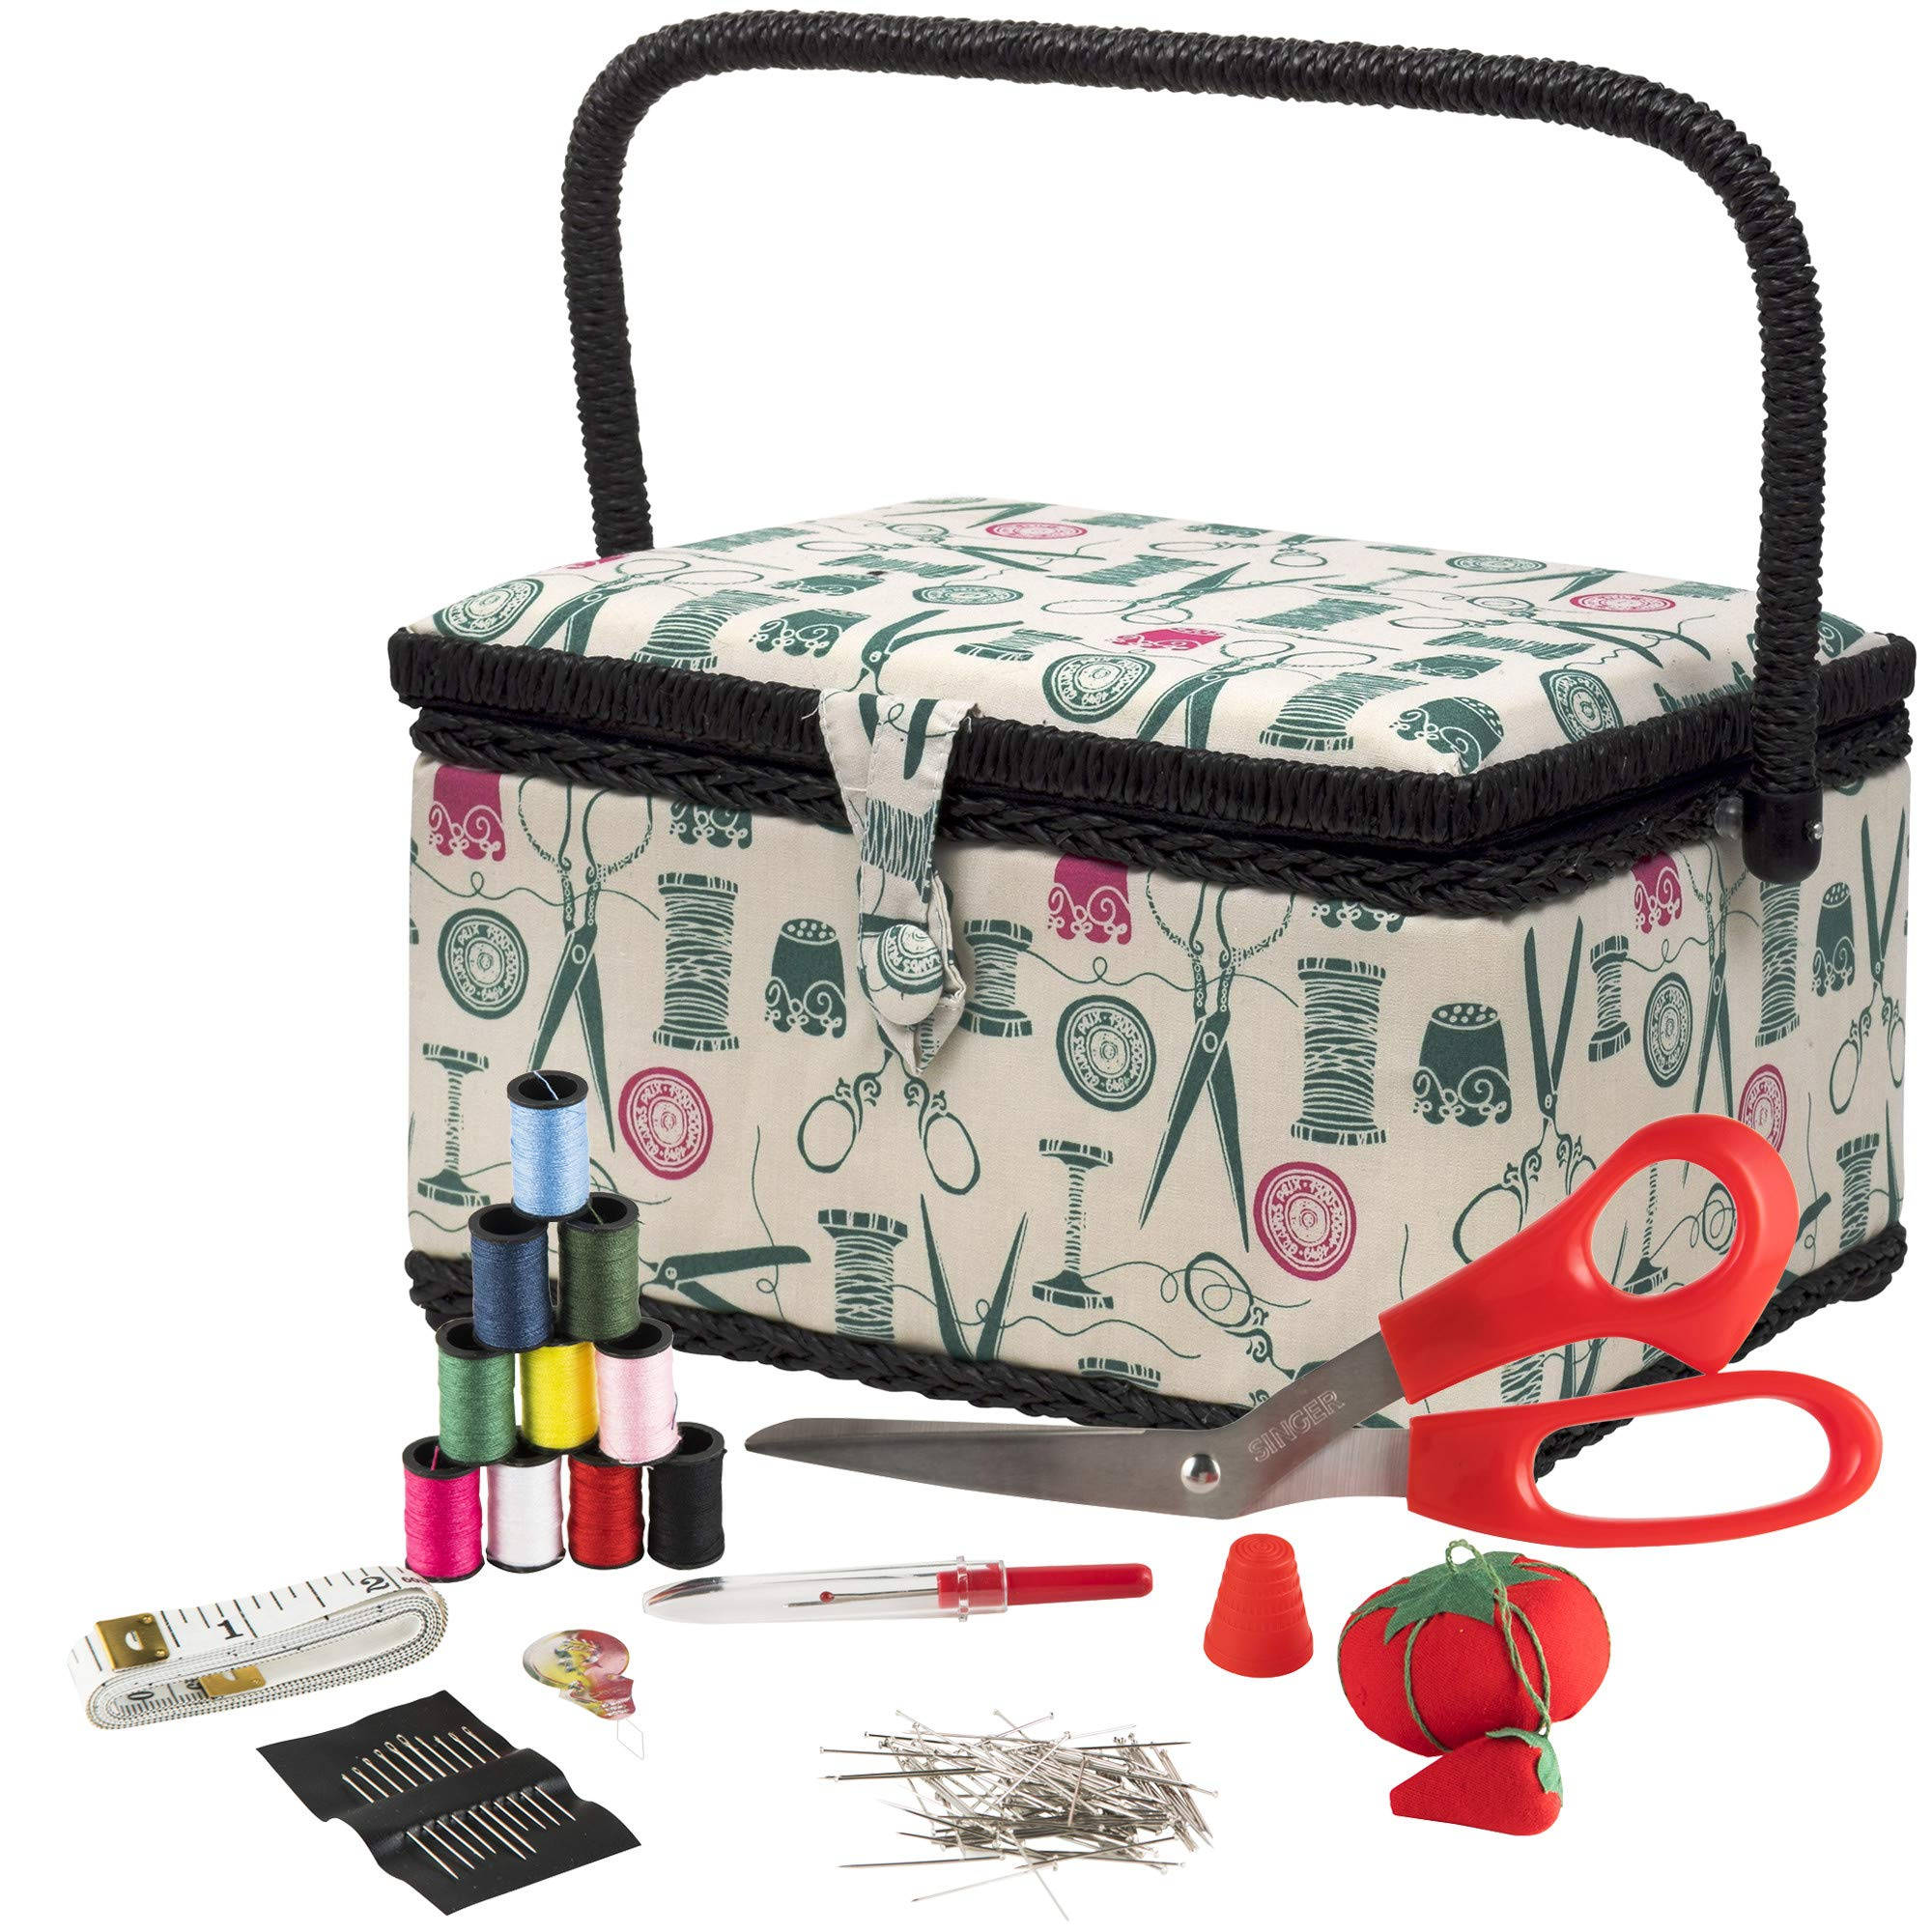 SINGER 07271 Basket with Sewing Notions Kit & Removable Tray-Vintage Spools, Tan by SINGER